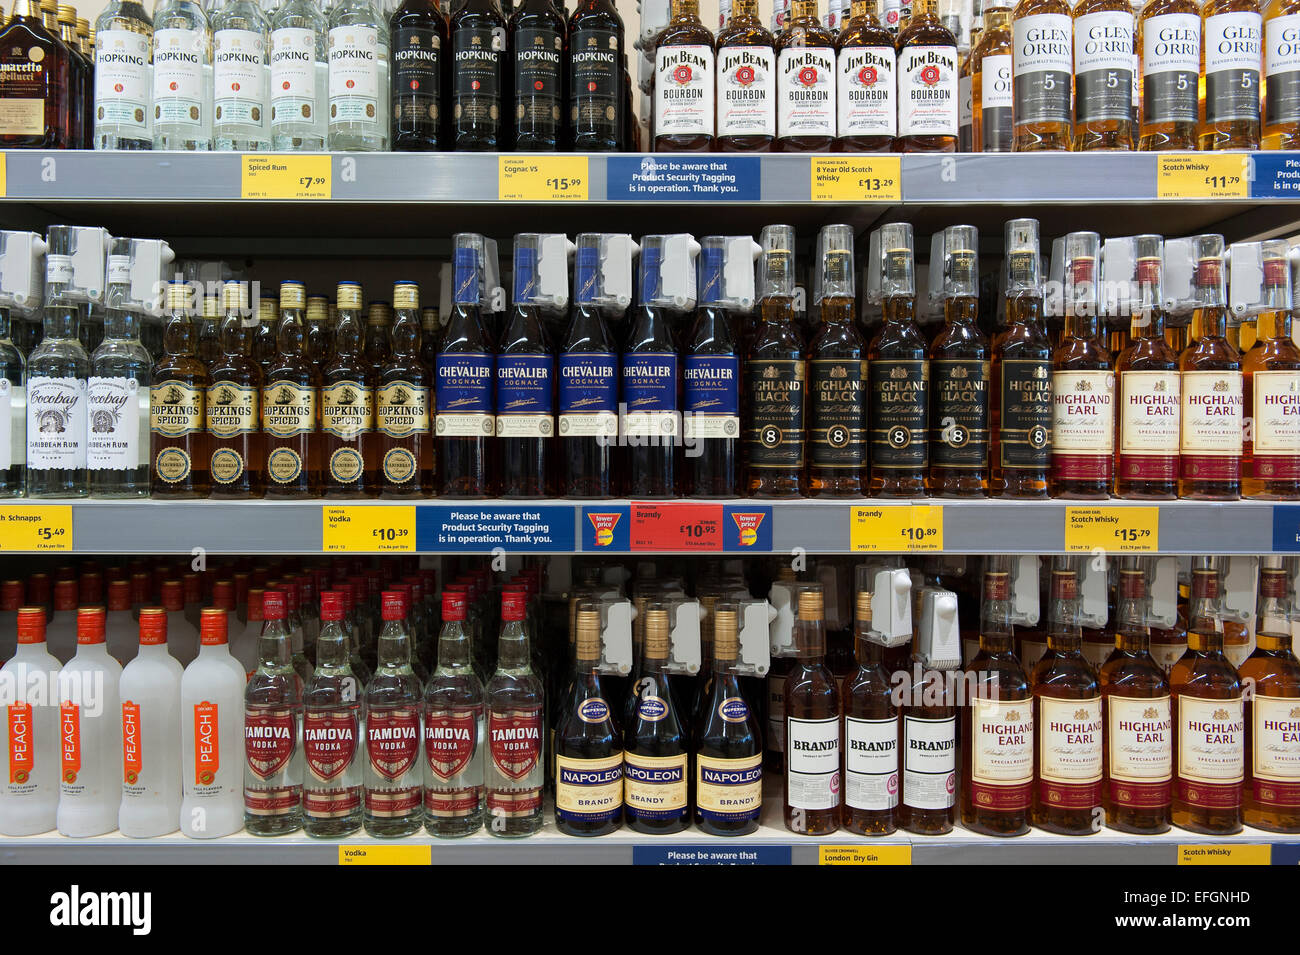 Bottles of cheap alcohol including brandy, whisky and vodka on shelves in a UK budget supermarket. - Stock Image